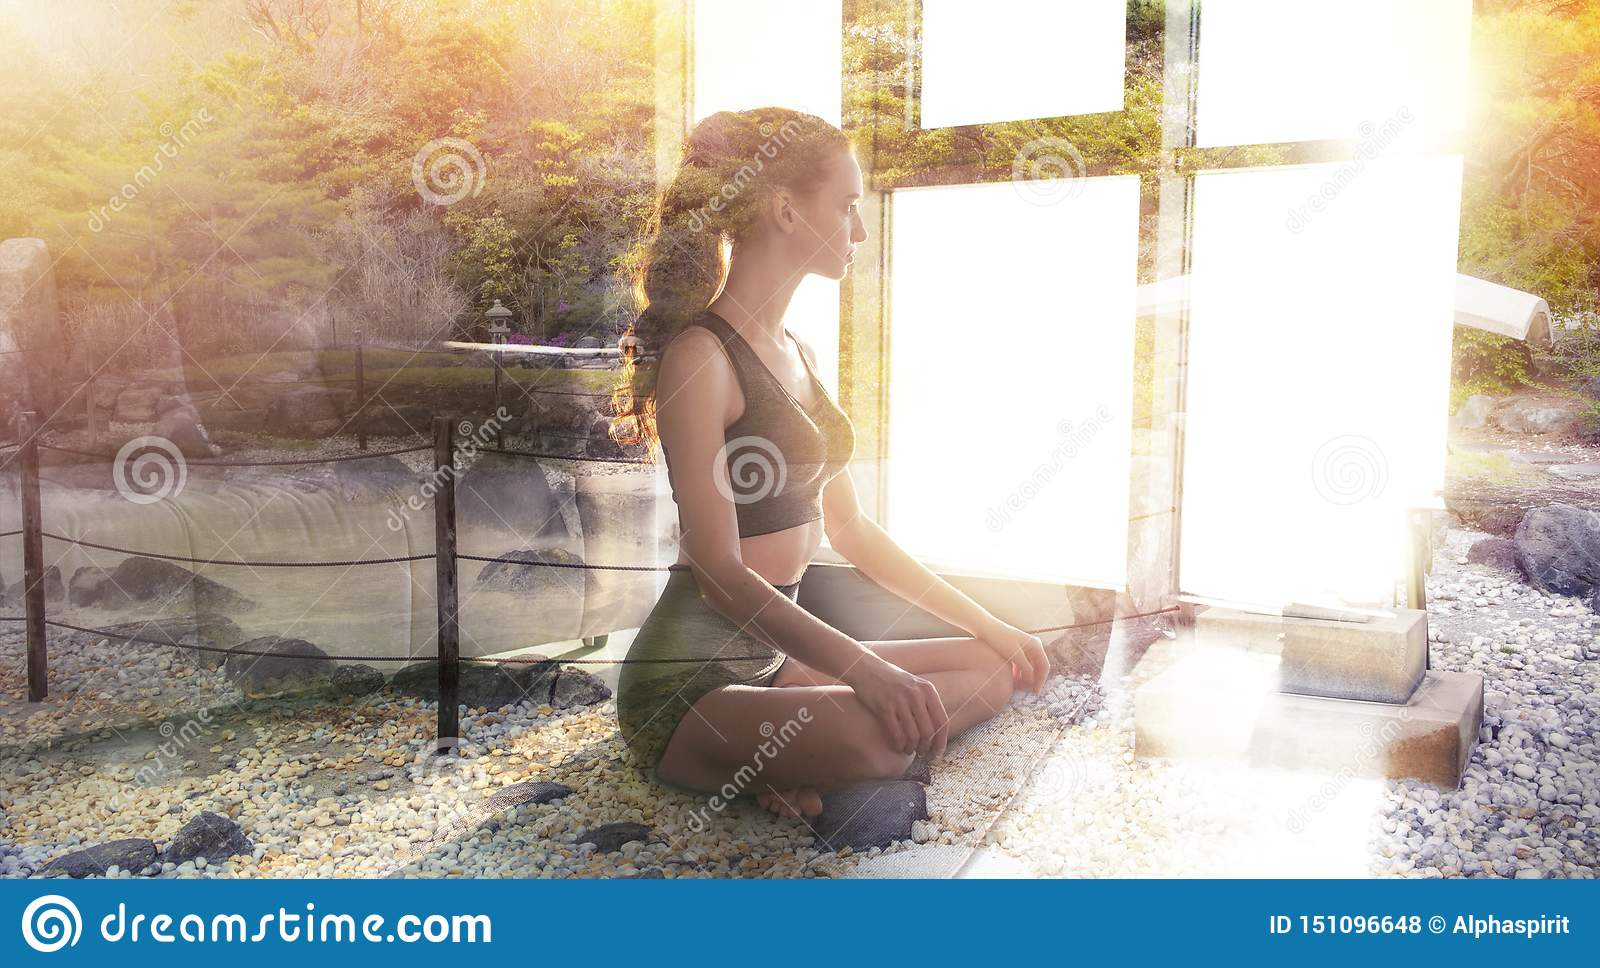 Young girl relaxing in yoga position at home with zen garden. Double exposure